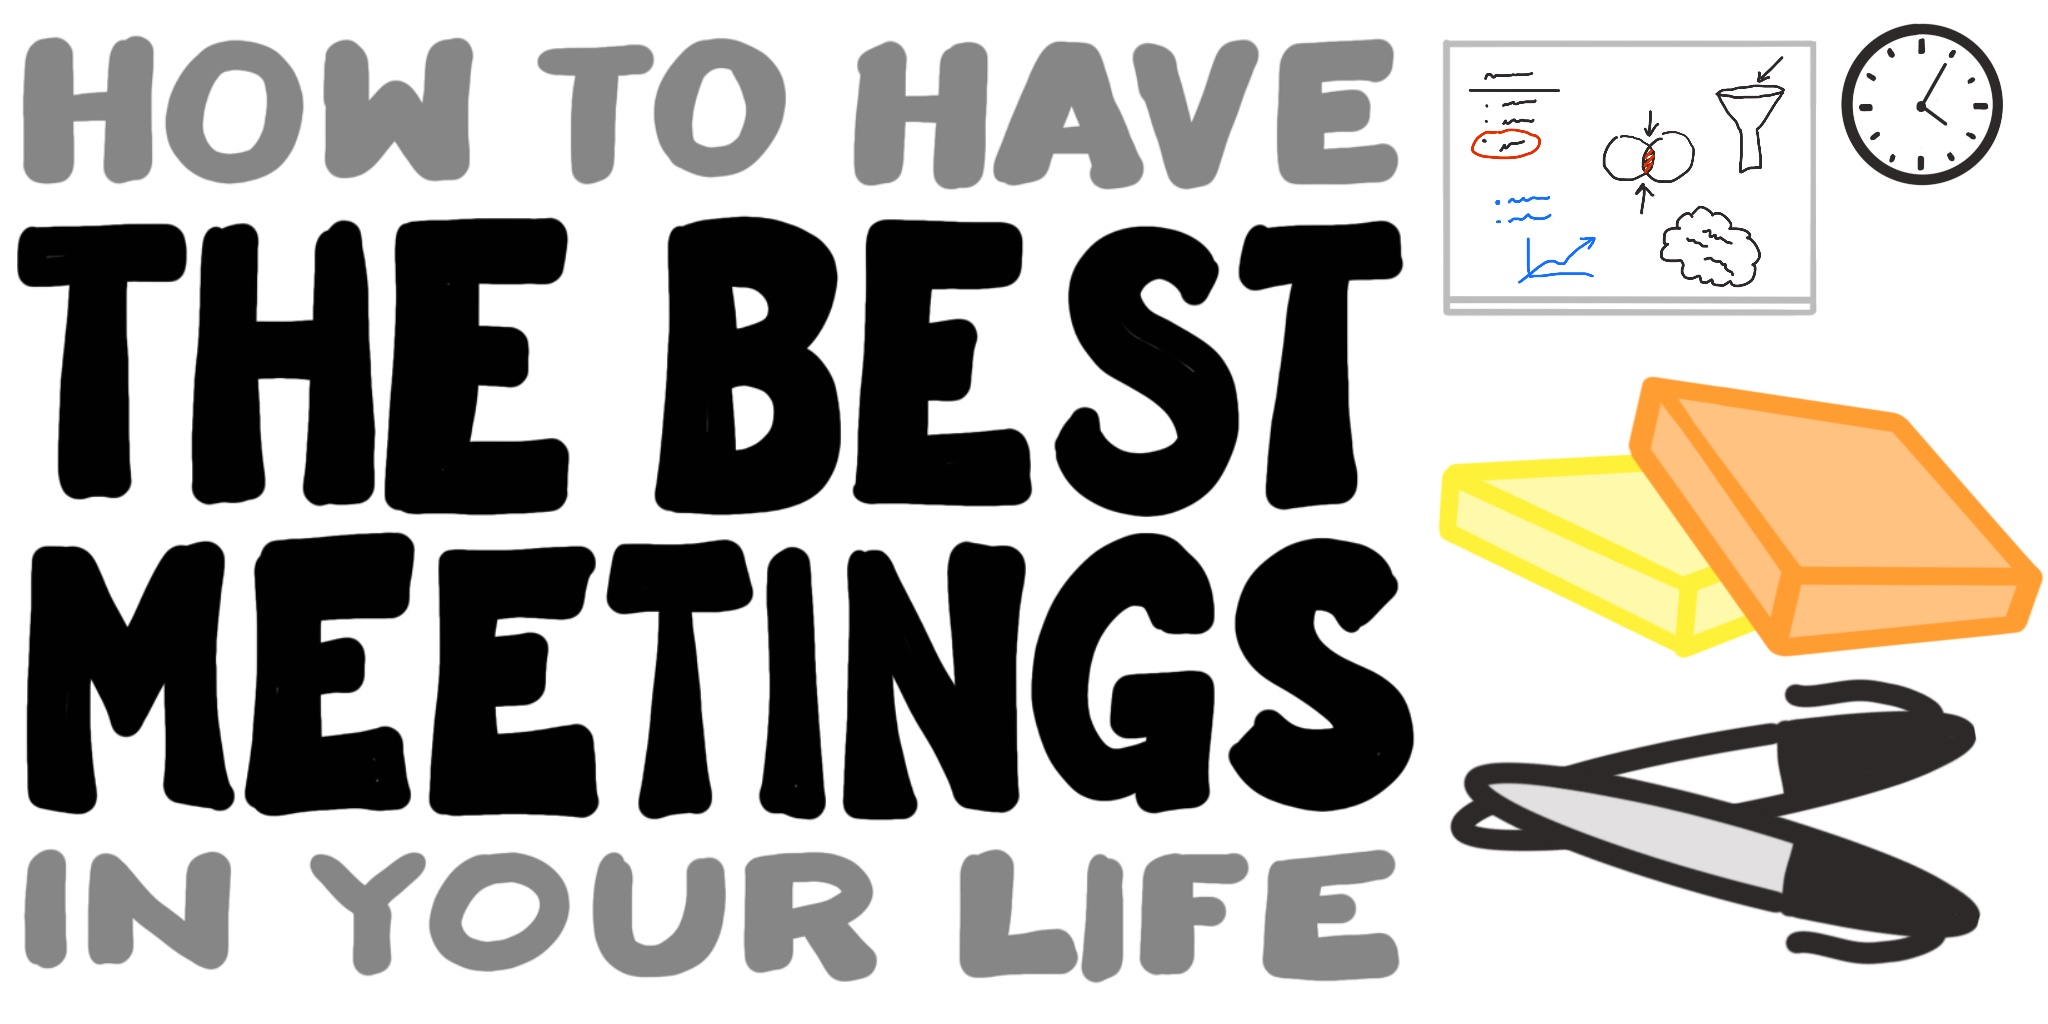 How to Have the Best Meetings in Your Life!